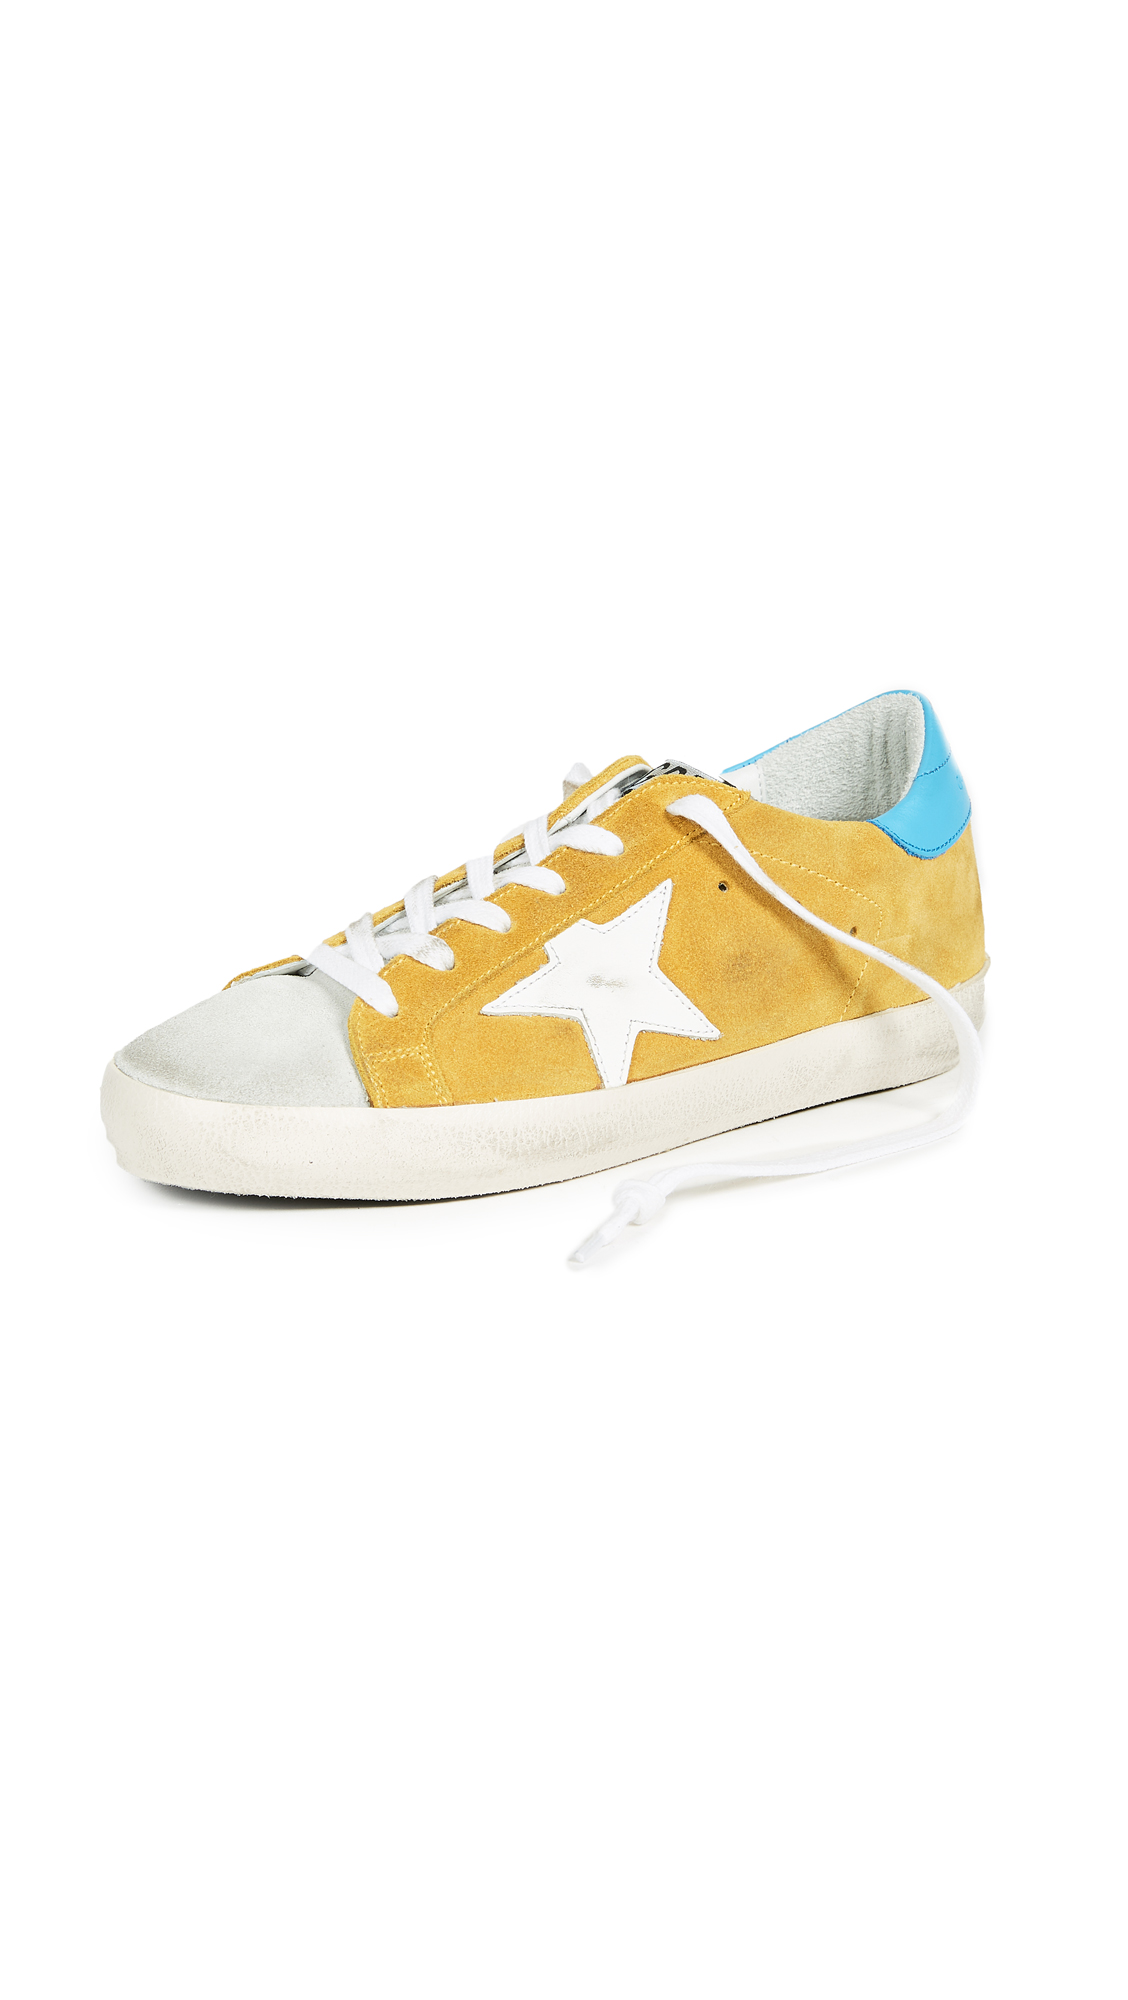 Golden Goose Superstar Sneakers - Yellow/Blue/White